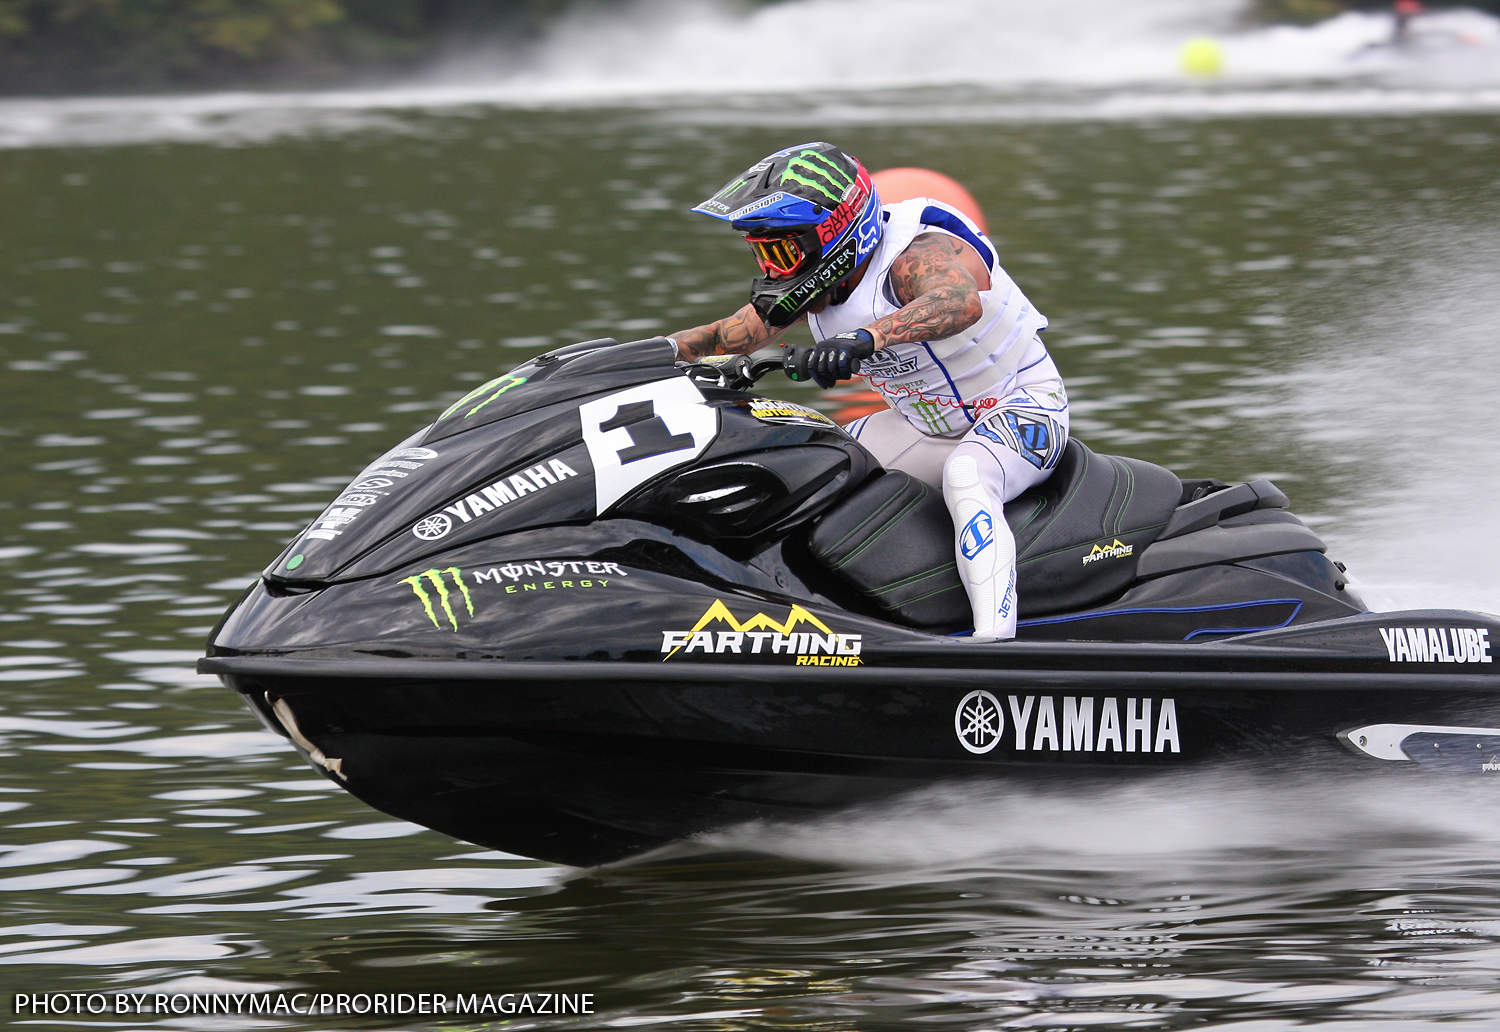 Yamaha rider Dustin Farthing won his 17th national title.